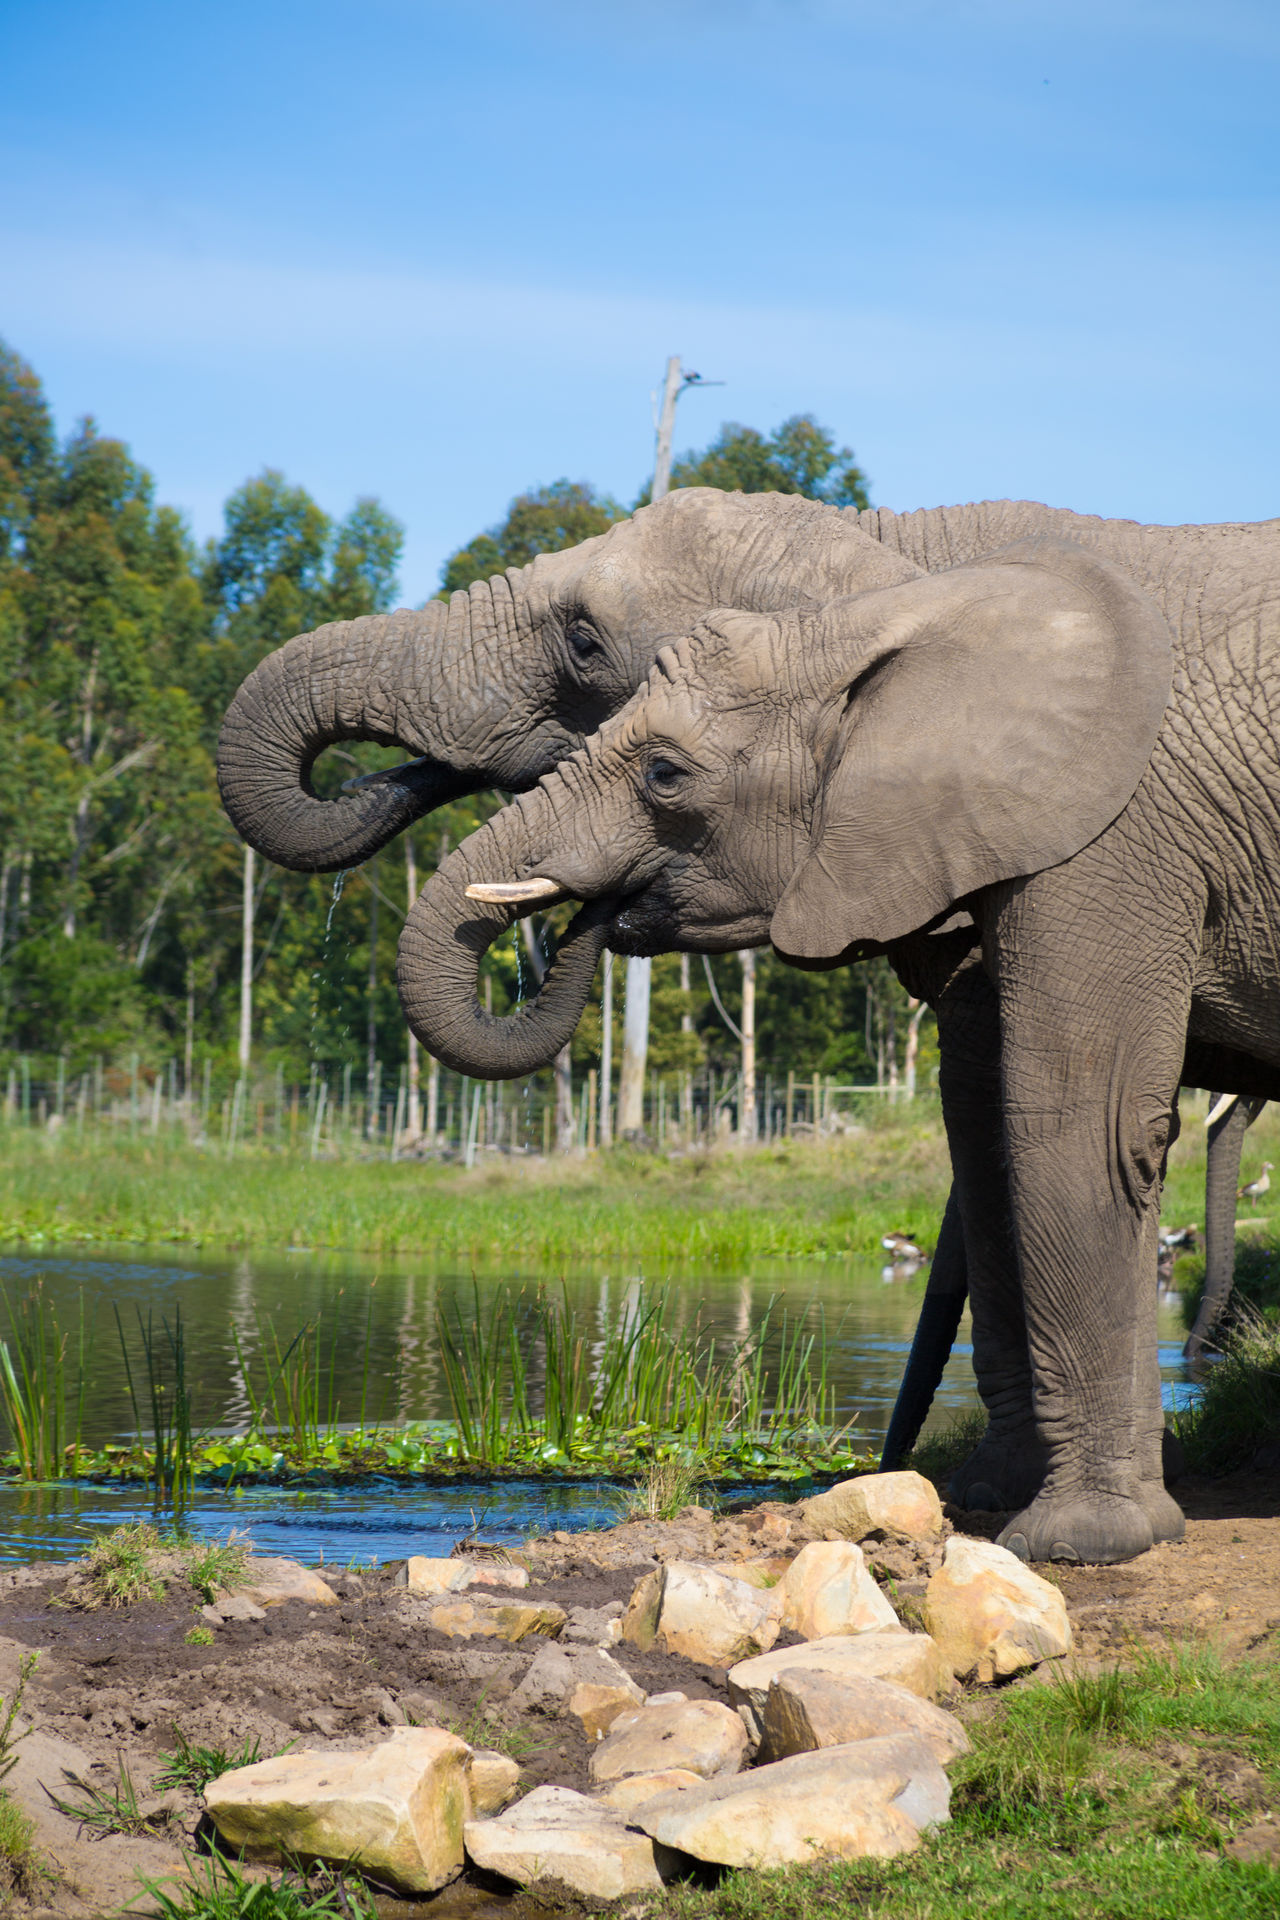 African Elephant Animal Body Part Animal Themes Animal Trunk Animal Wildlife Animals In The Wild Clear Sky Day Elephant Grass Mammal Nature No People One Animal Outdoors Safari Animals Sky Standing Tree Tusk Two Elephants Drink Water